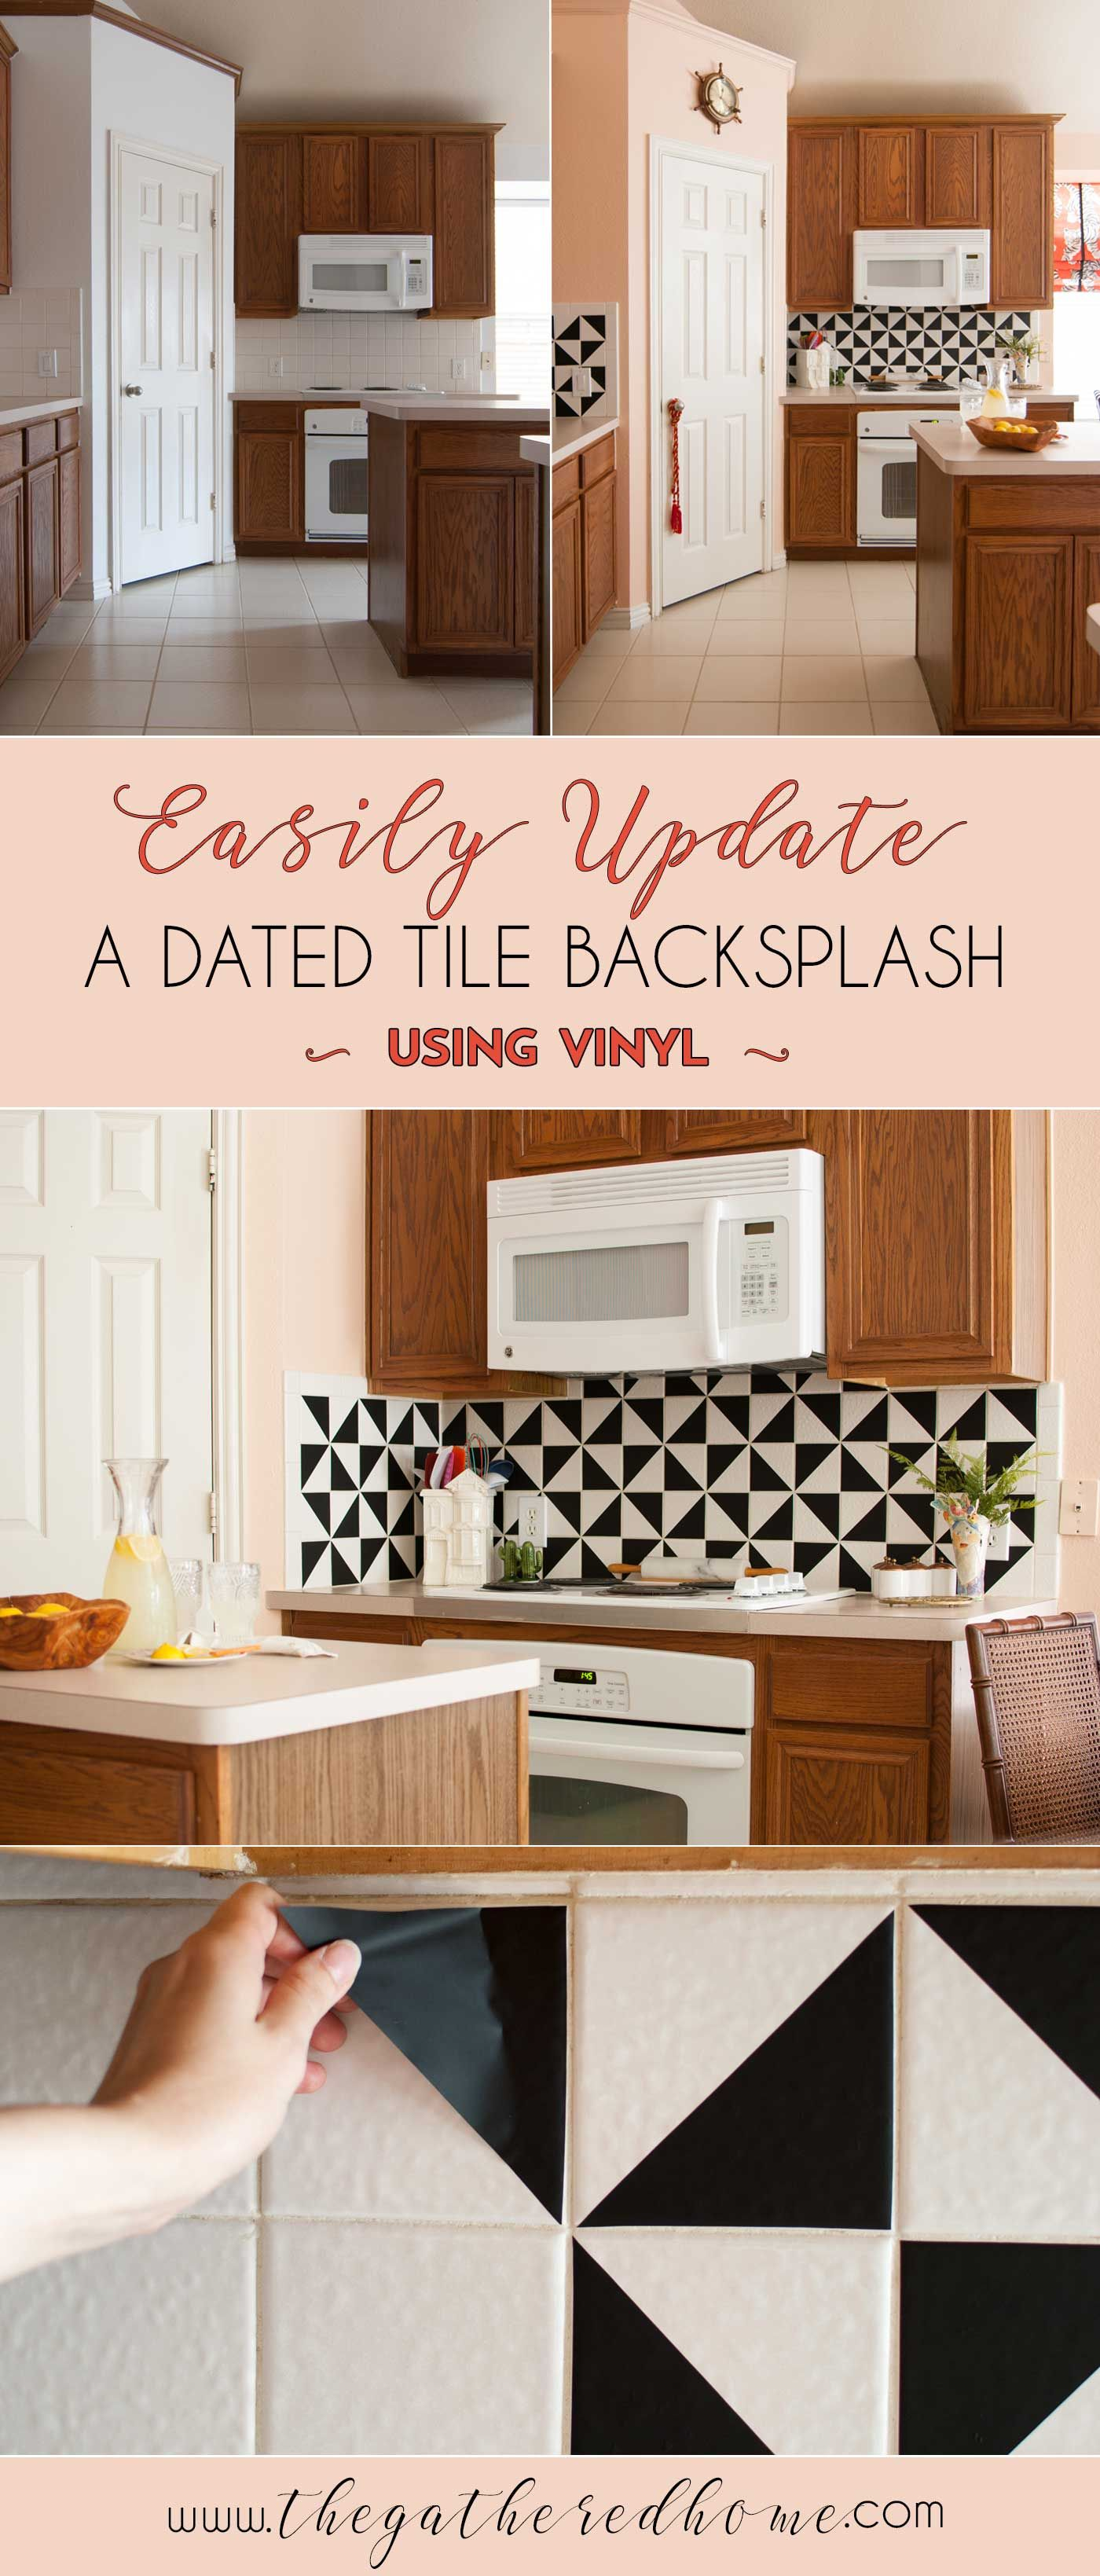 I love the look of trendy black and white cement tiles this diy kitchen backsplash makeover uses vinyl to get a similar look what